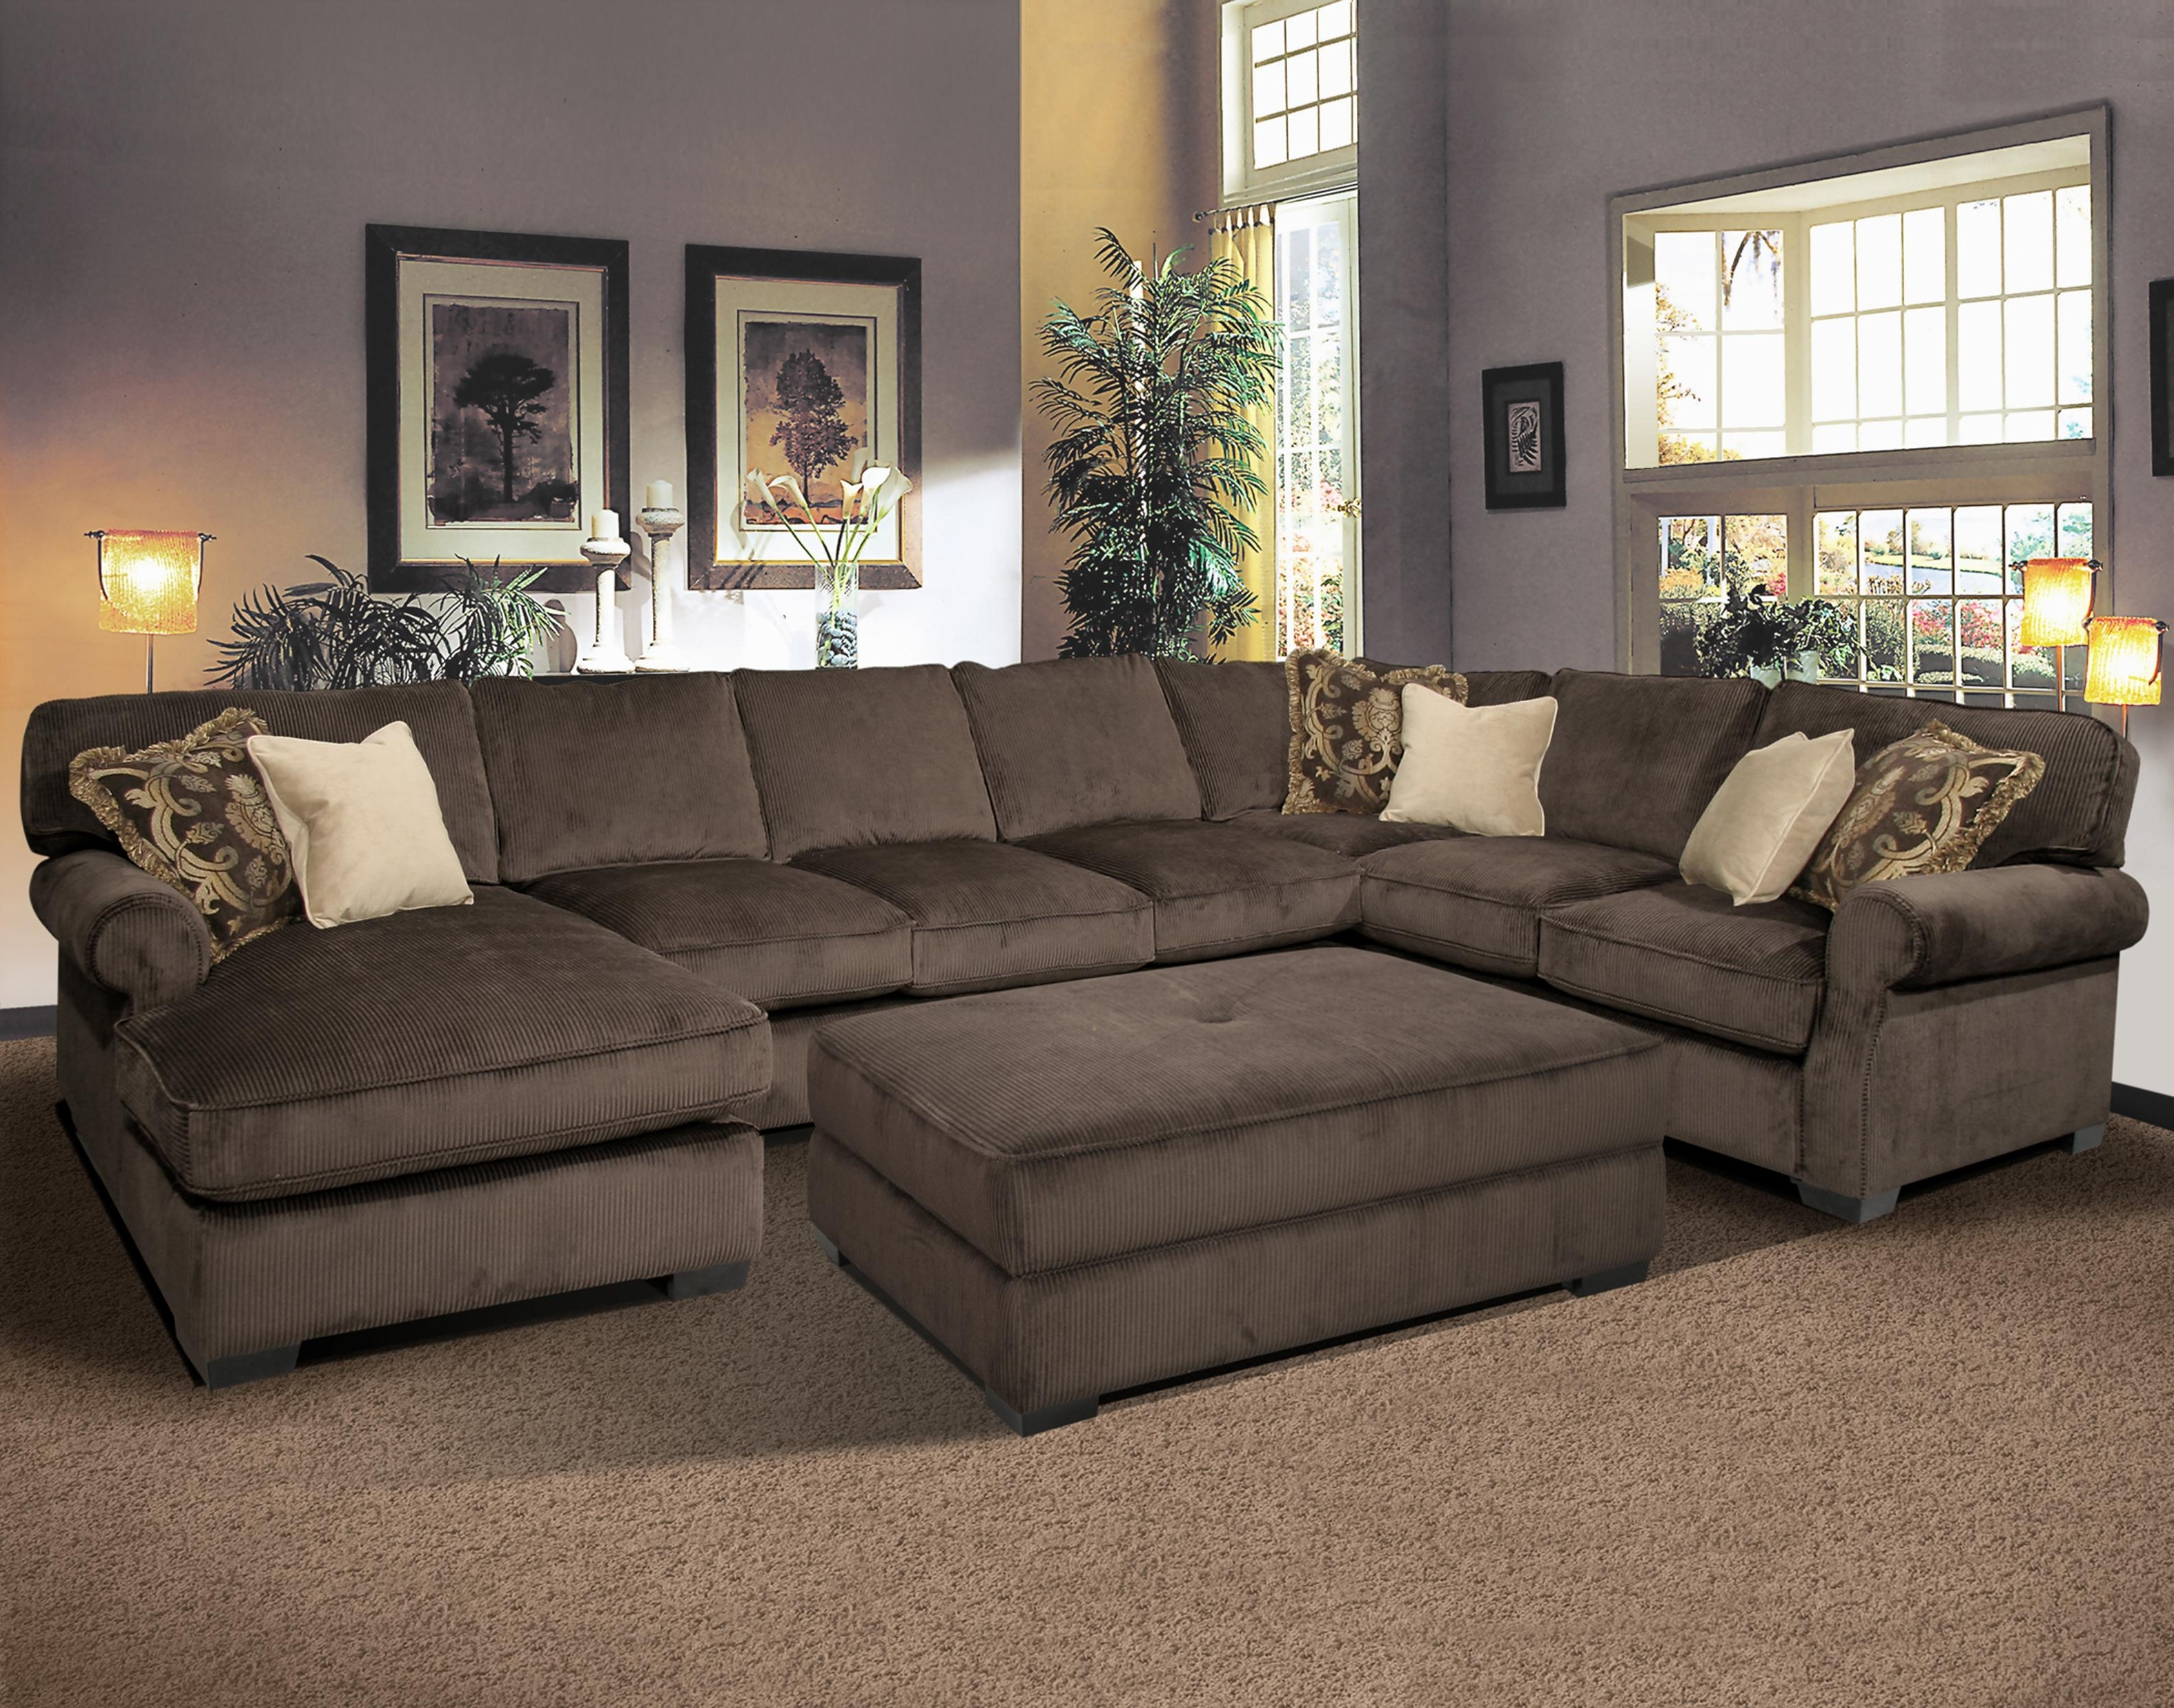 Extra Large U Shaped Sectionals In 2018 Sectional Couch With Recliner Ikea Couch Bed Large Leather (Gallery 15 of 20)